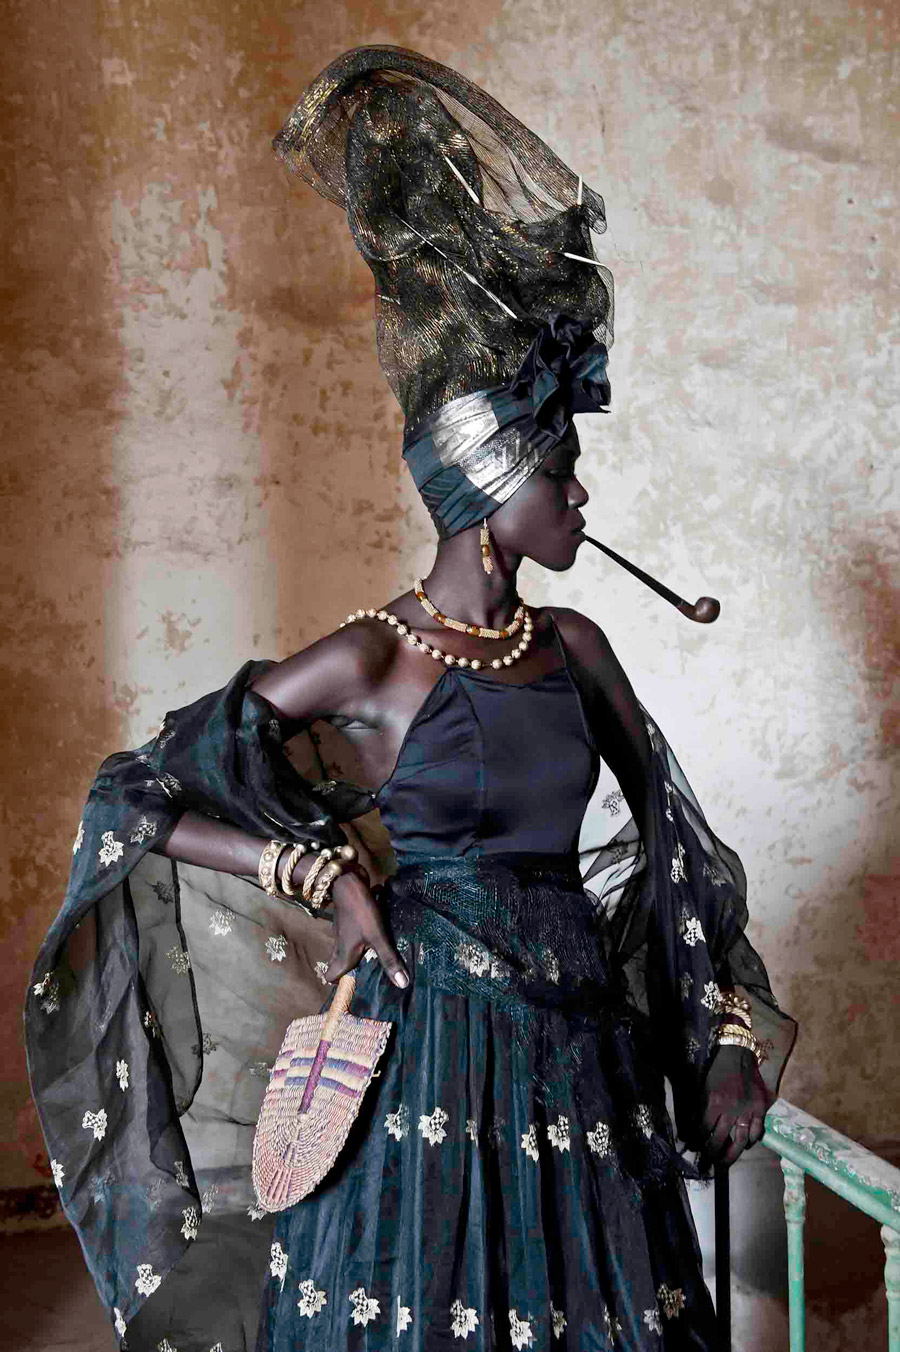 Signare #1, �le de Gor�e, 2011, Fabrice Monteiro (Beninese-Belgian, works in Senegal, born 1972), archival digital print, 47 � x 31 � in., Gift of the African Art Council and African Art Acquisition Fund, 2013.14, � Fabrice Monteiro. Not currently on view.